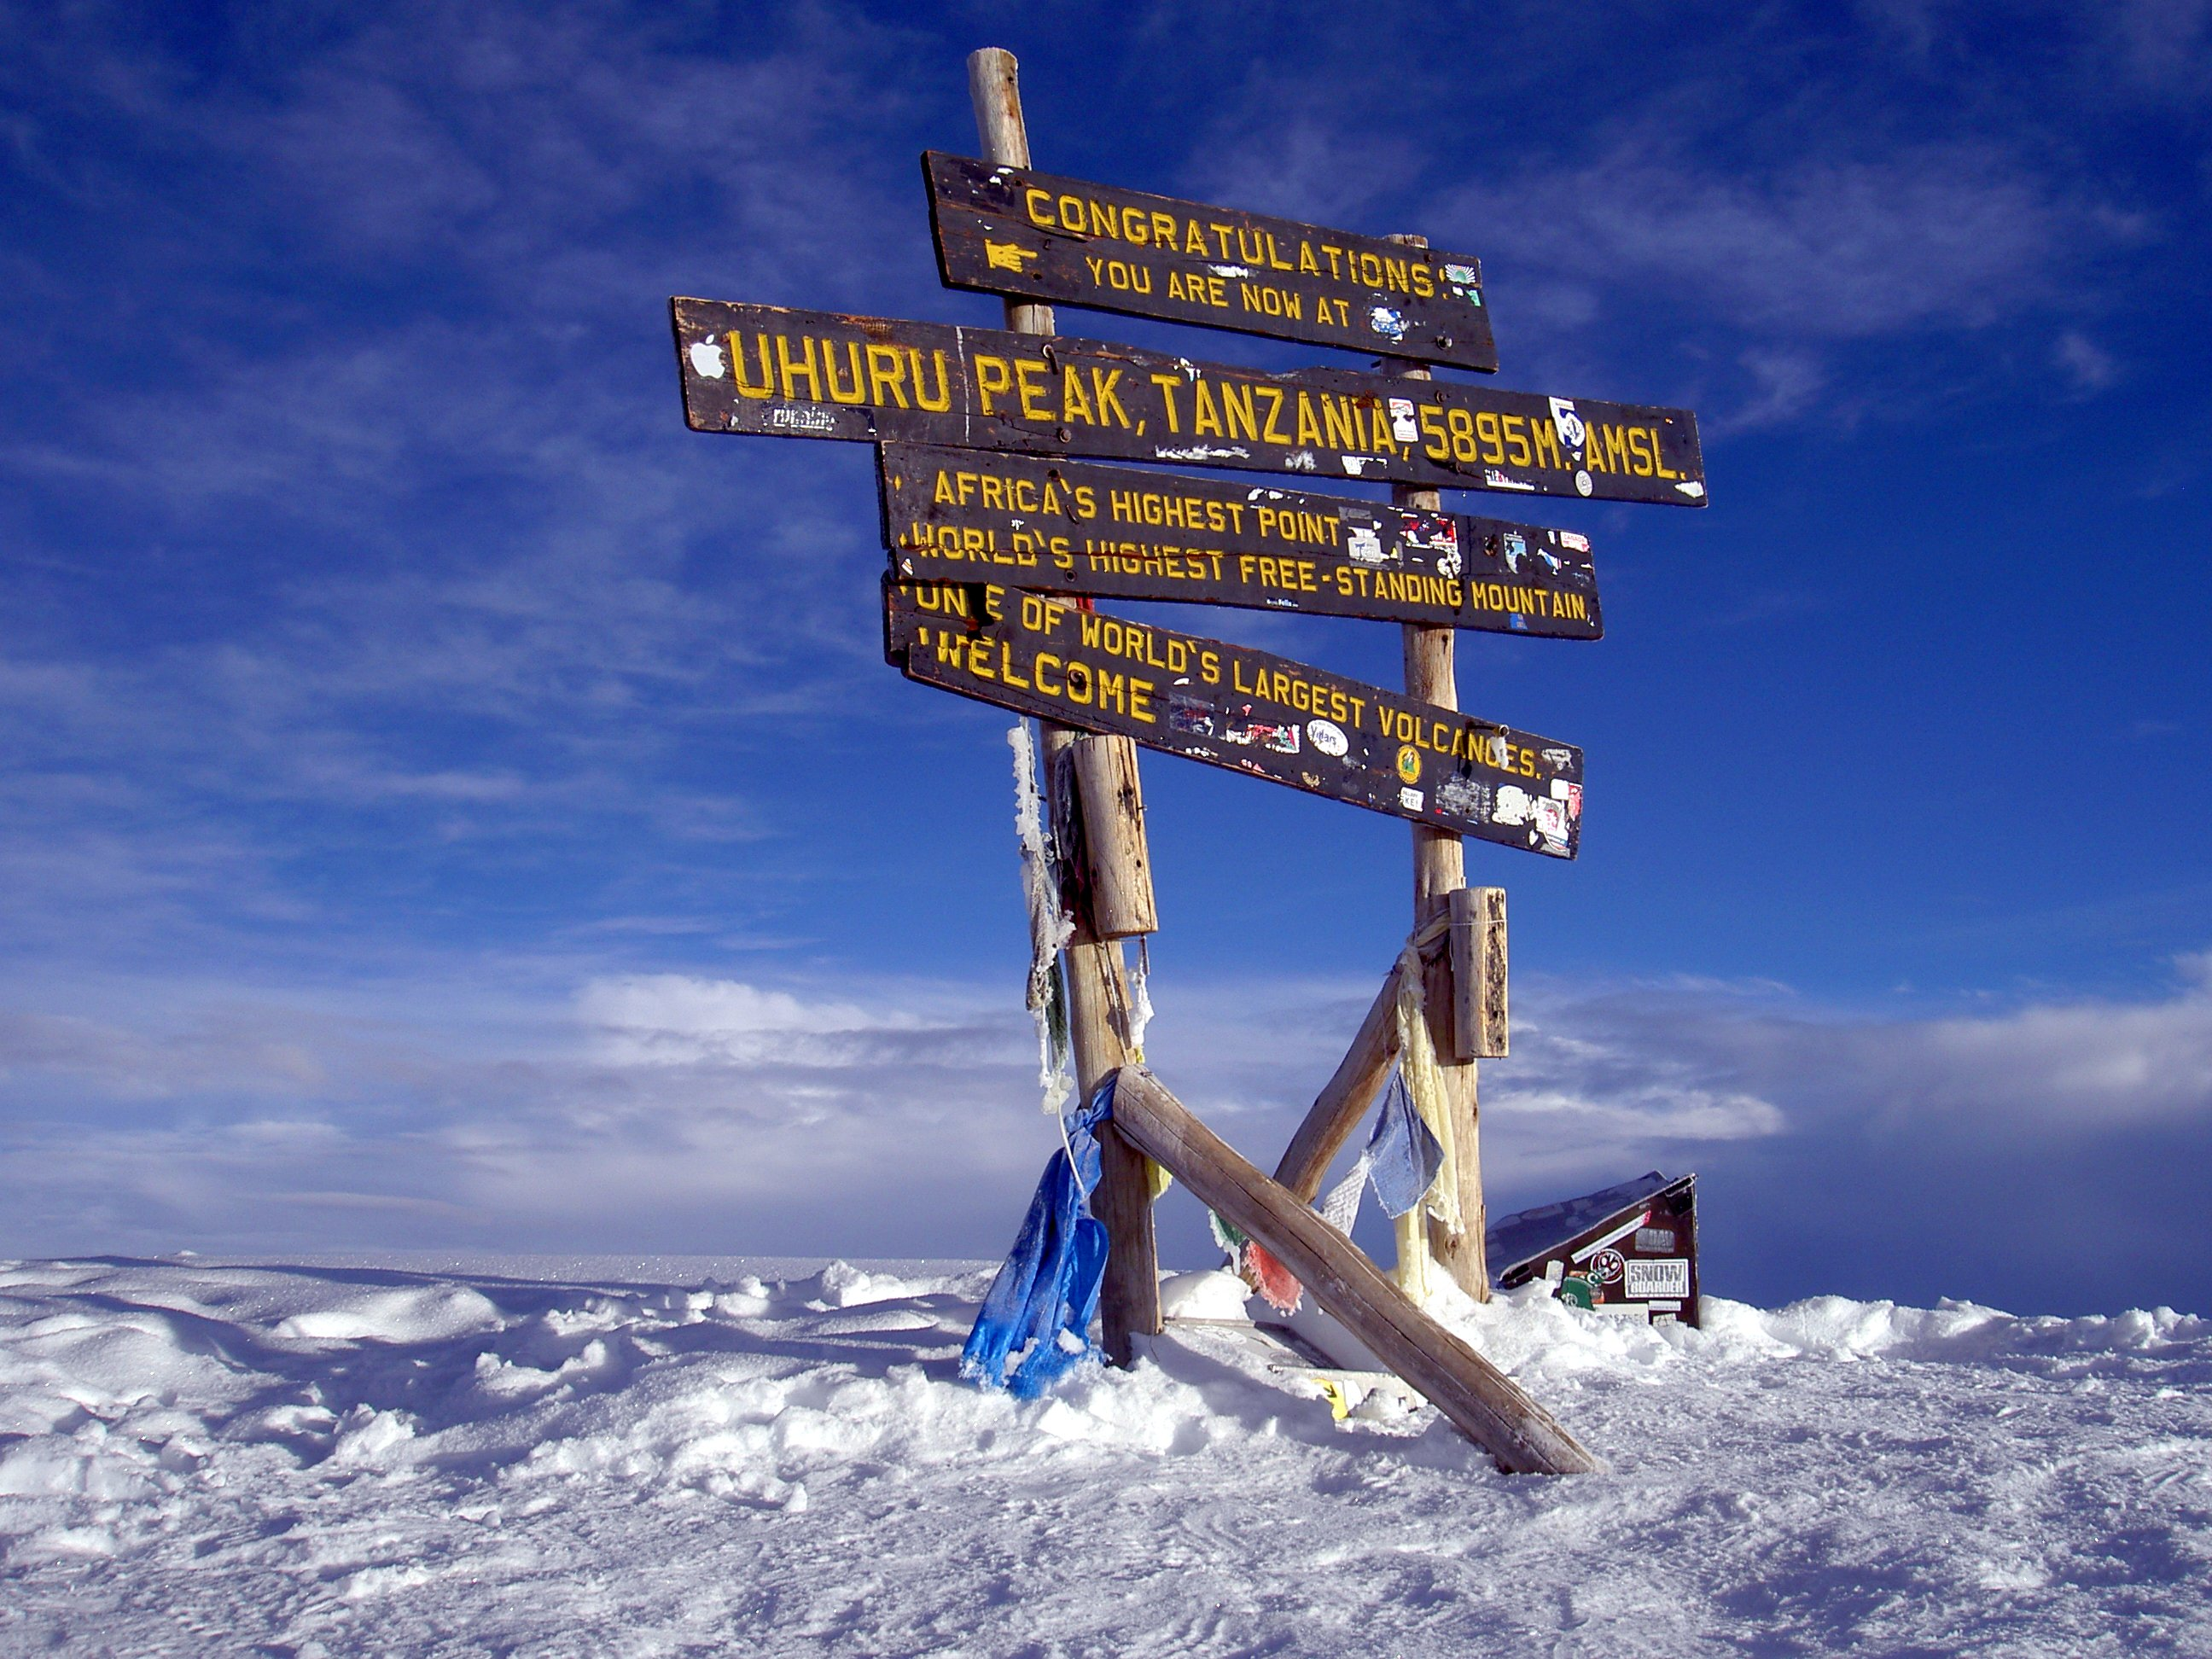 my dream of climbing mount kilimanjaro in tanzania How to climb mount kilimanjaro in tanzania in four days it was one of the most painful and rewarding experiences reaching the top of africa was incredible.